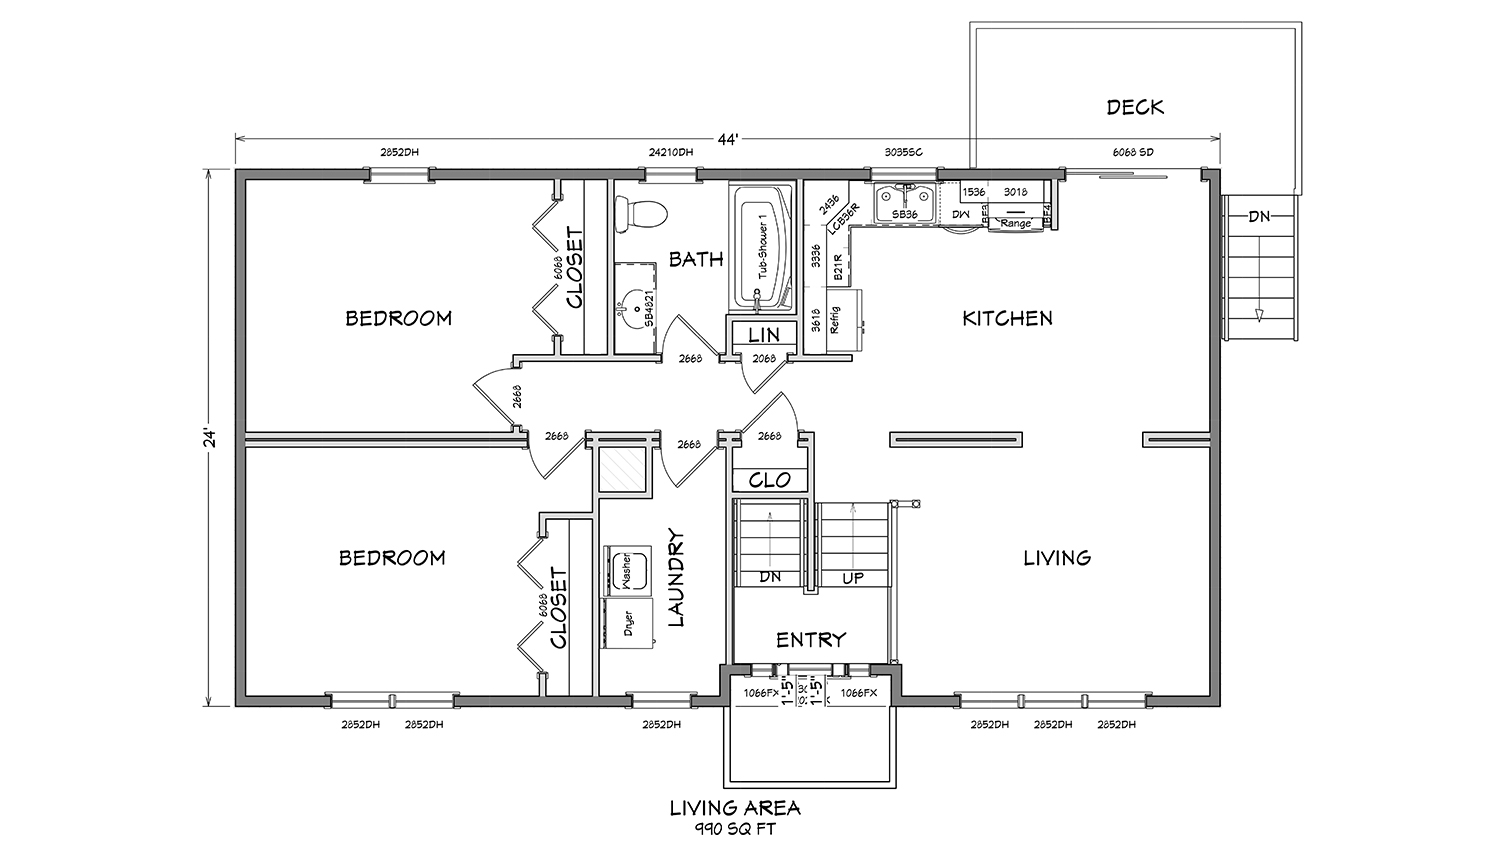 Bl001 cape cod modular home floor plan 01 glenco inc for Cape cod house layout